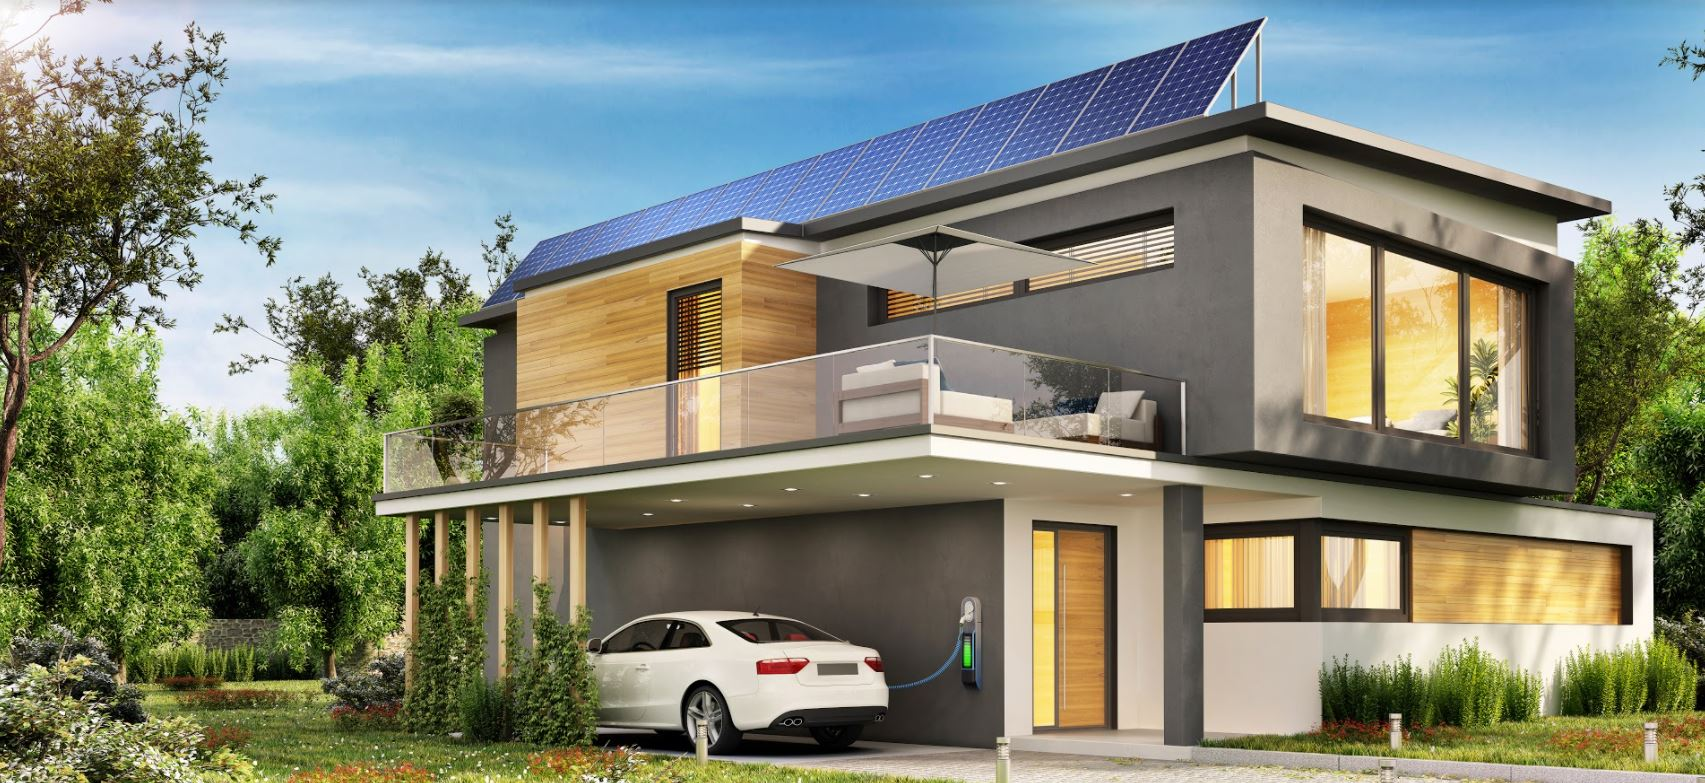 An electric car charging from home solar panels